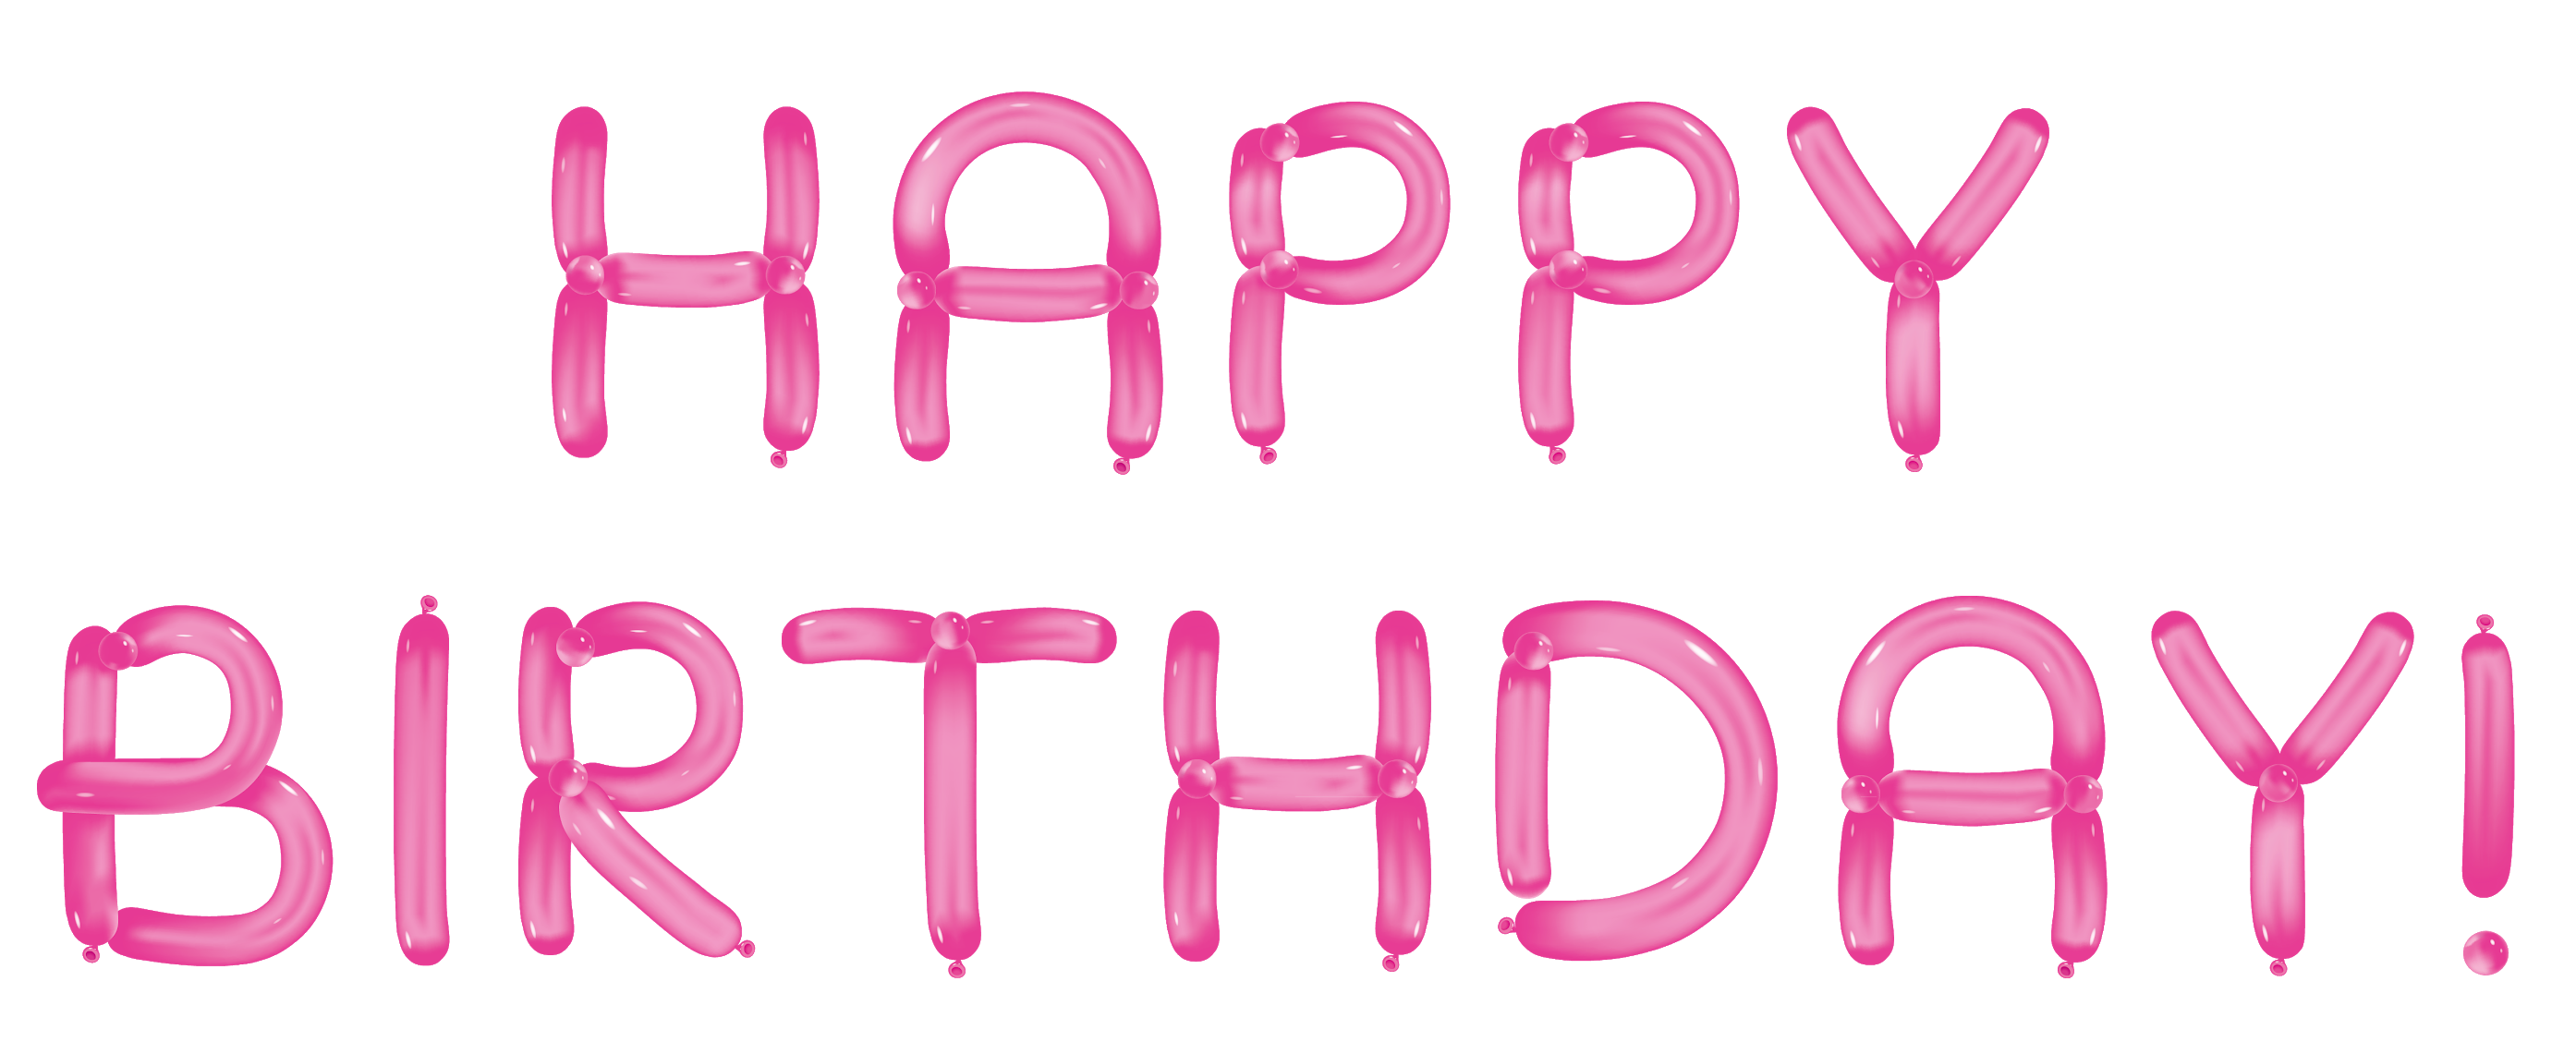 Pin by pngsector on Happy Birthday Transparent PNG image